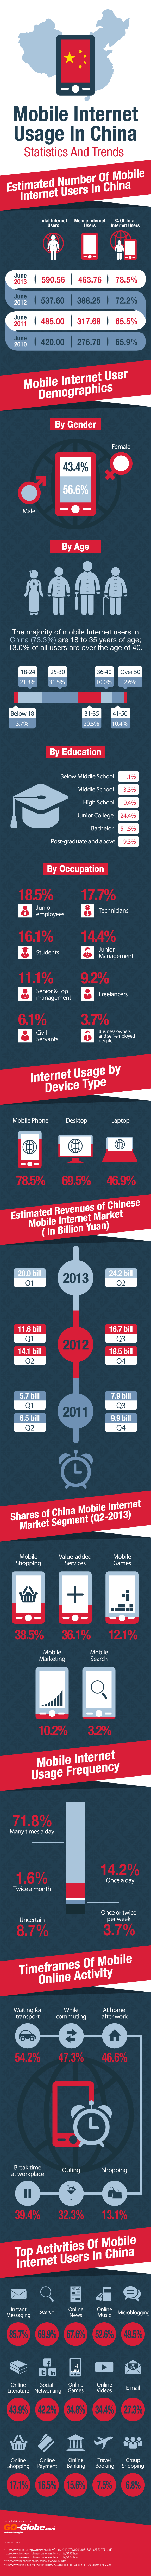 China's 464 million mobile web users (INFOGRAPHIC)